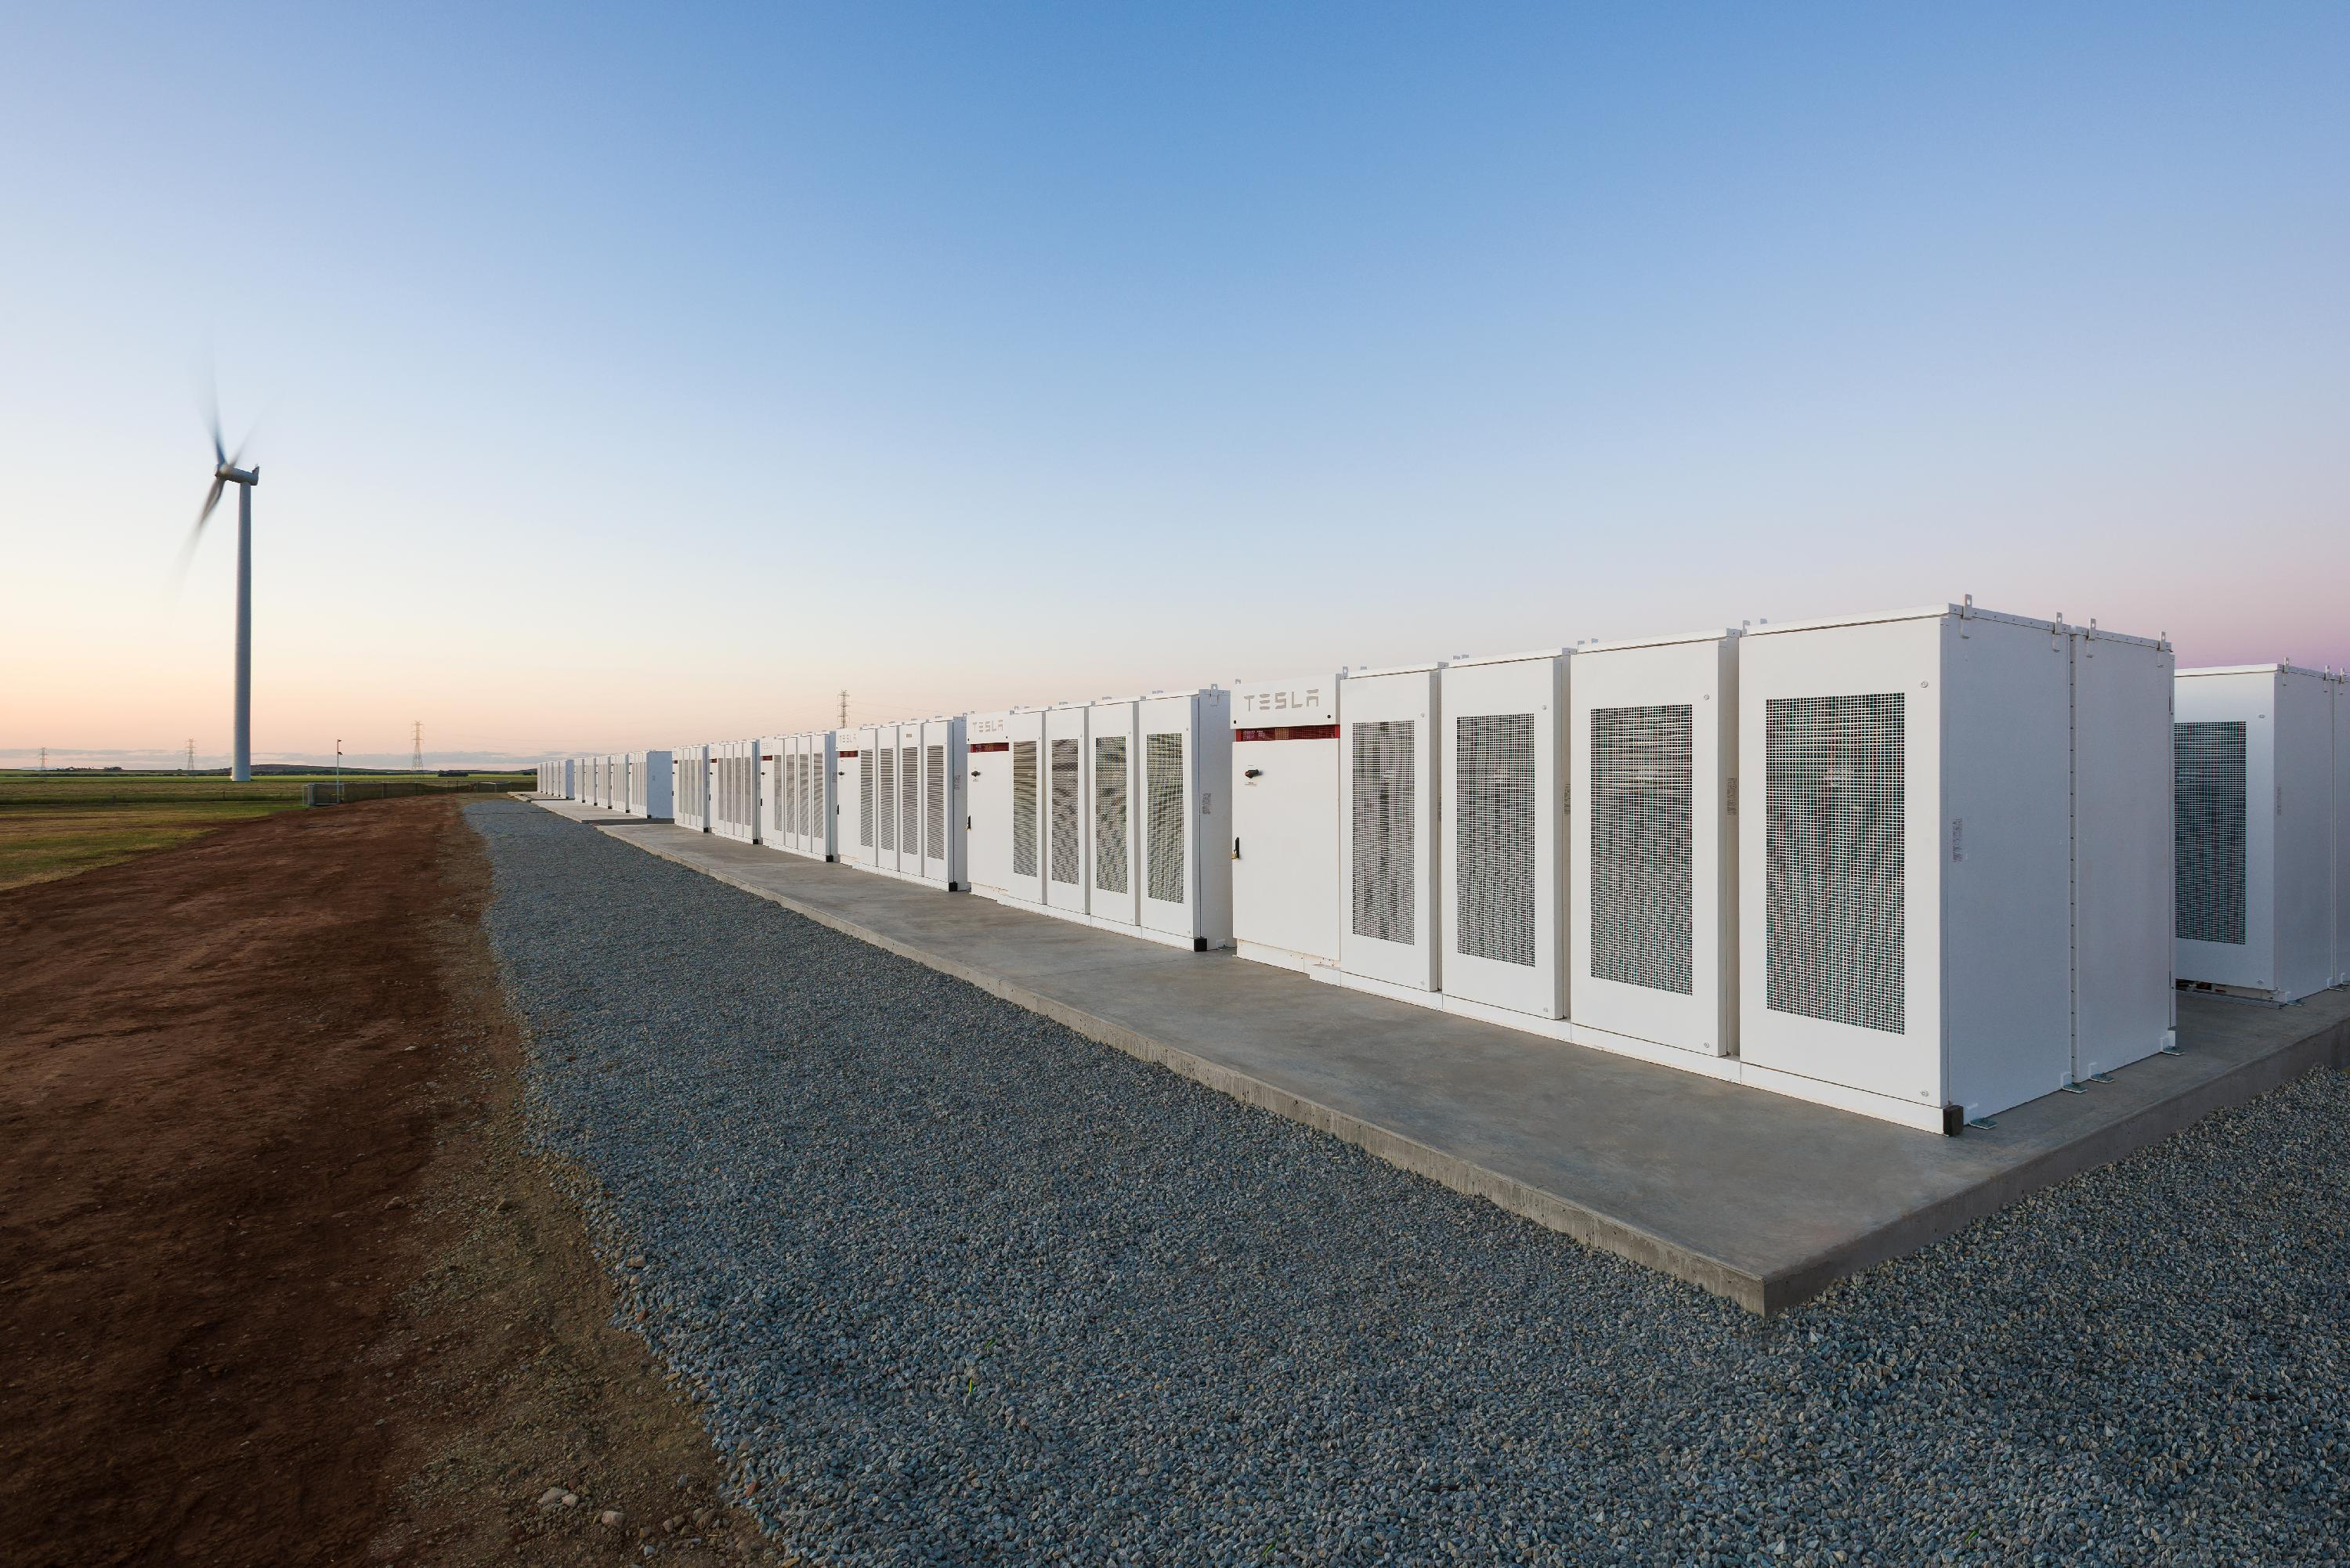 A Tesla Powerpack installation. Source: Tesla Inc.